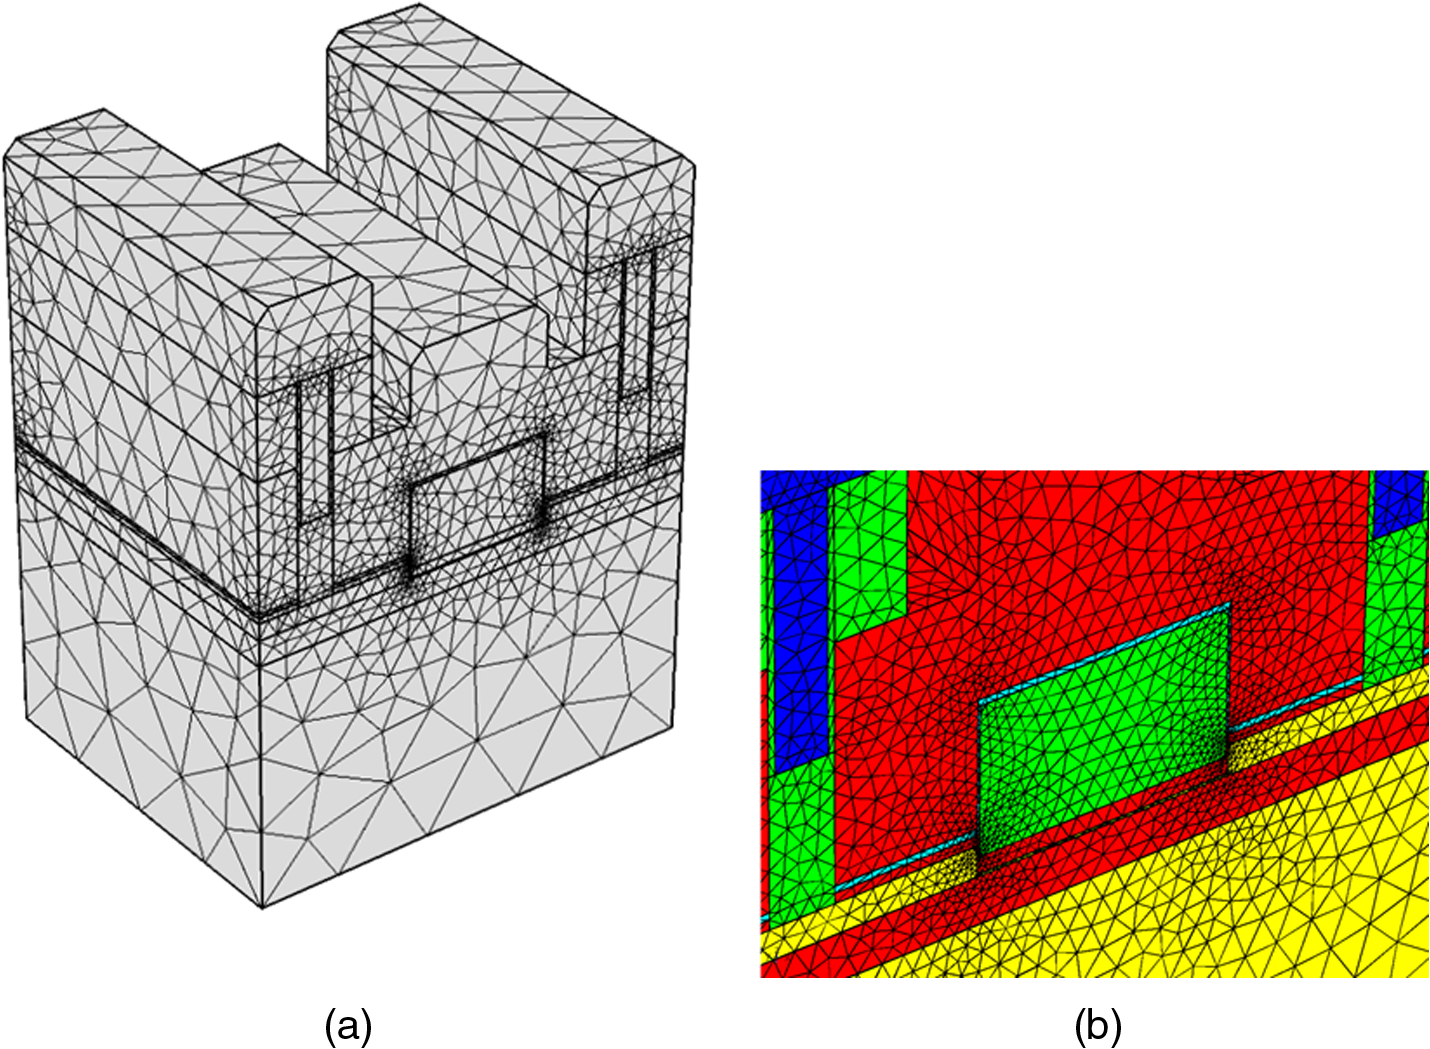 Electrical control simulation of near infrared emission in